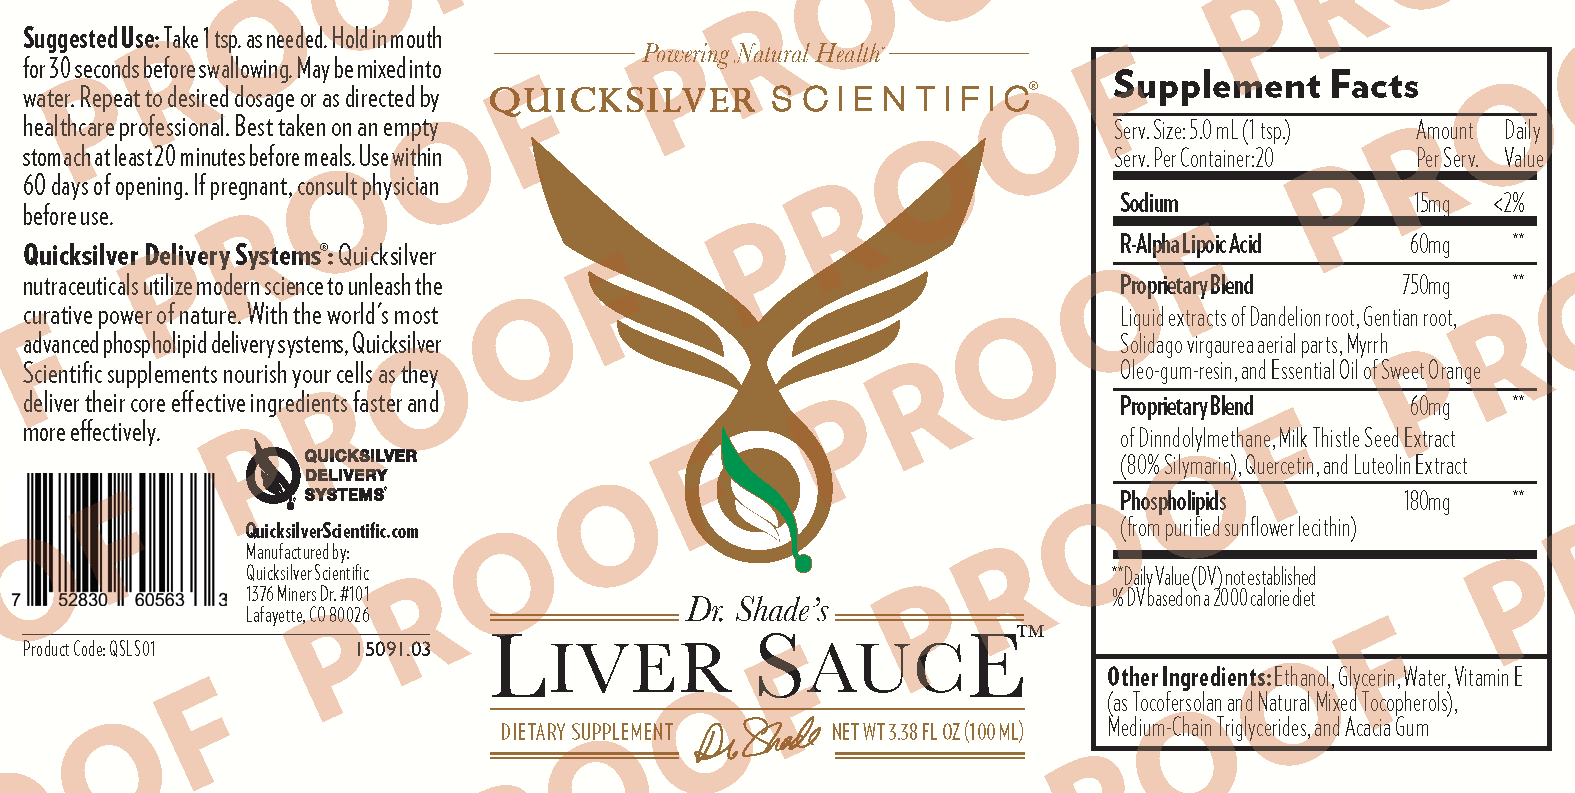 Liver Sauce 100ml Herbal Line 1509103 Ignatia Amara